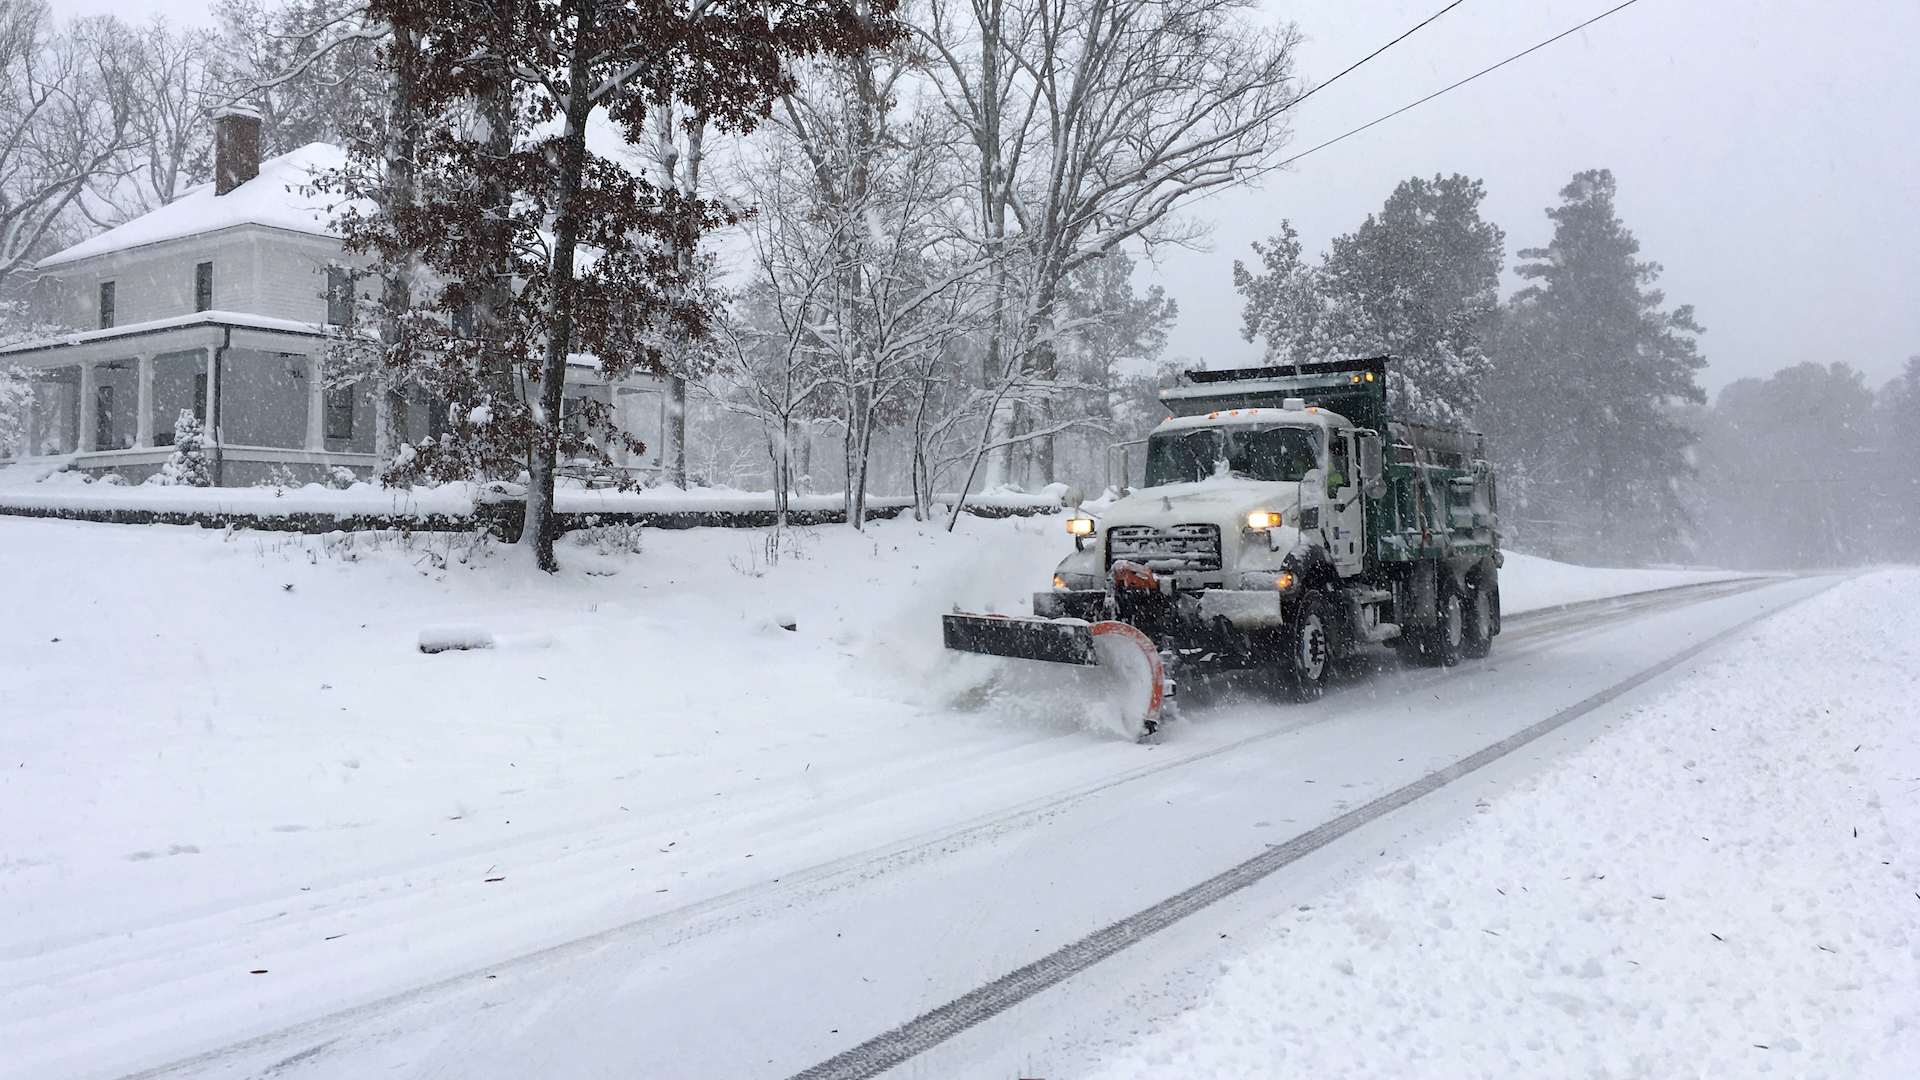 At least two dead, thousands without power after historic snowstorm in North Carolina